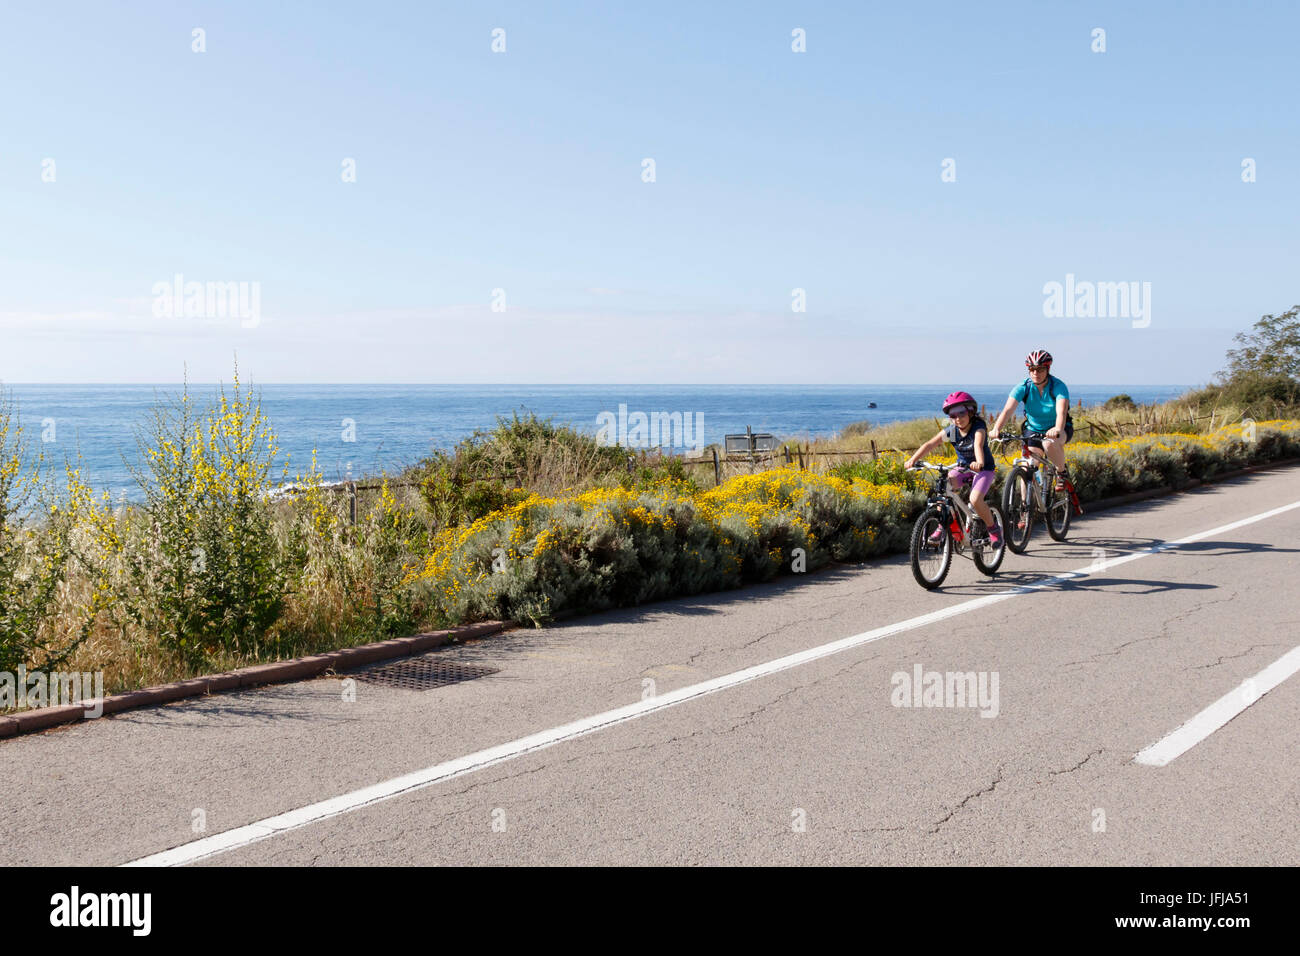 Liguria, Italy, Cycling Riviera cycleway - Stock Image